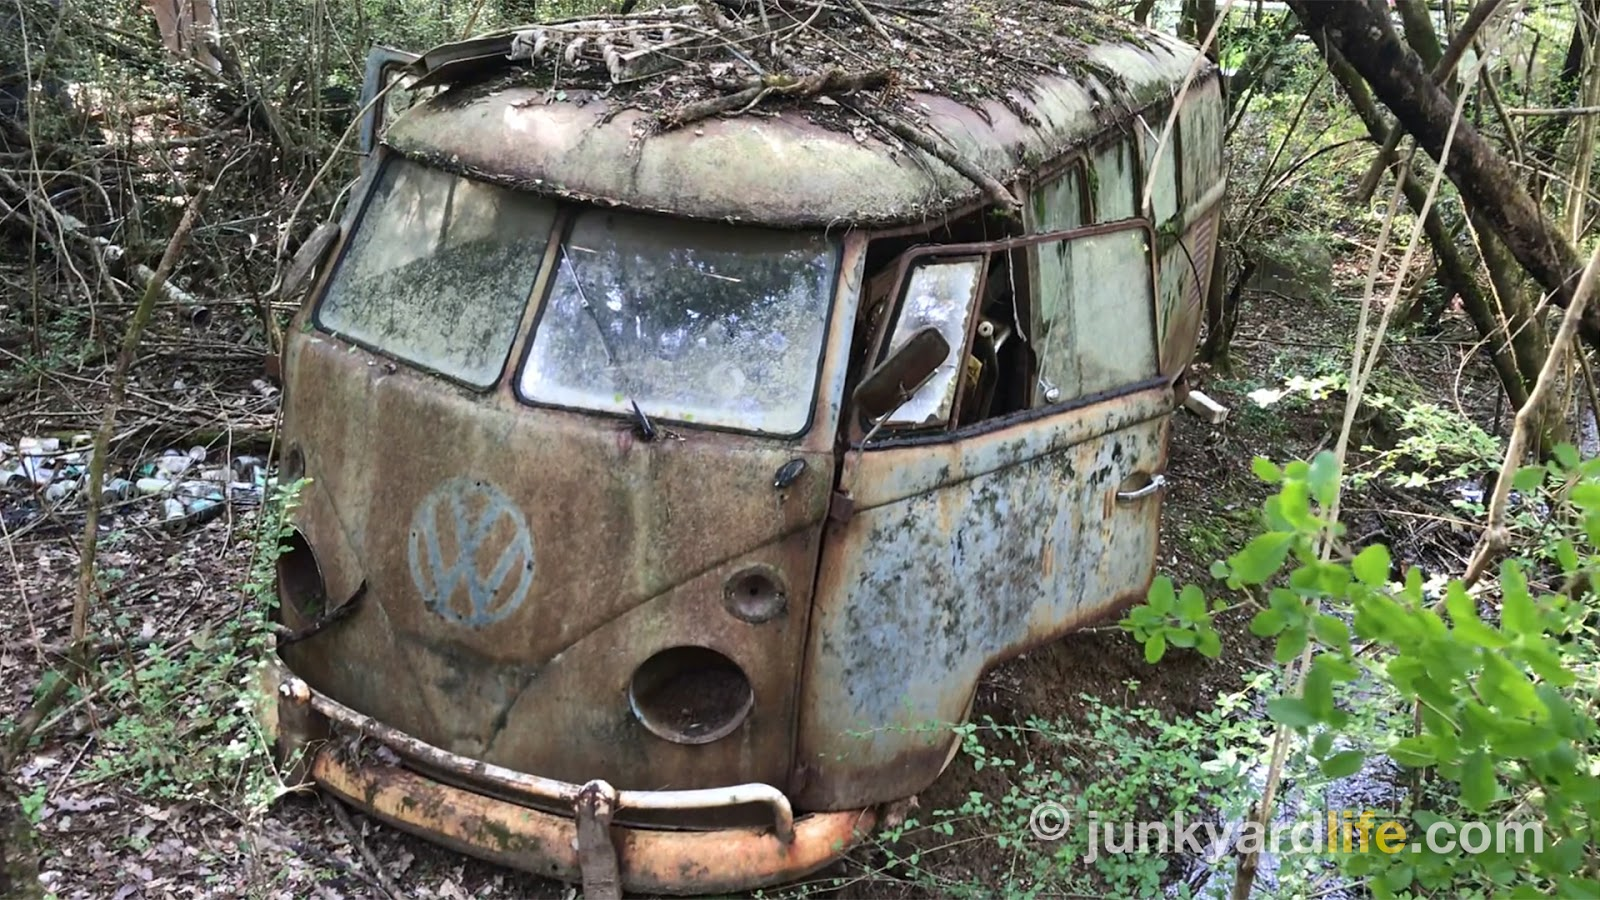 Junkyard Life: Classic Cars, Muscle Cars, Barn finds, Hot